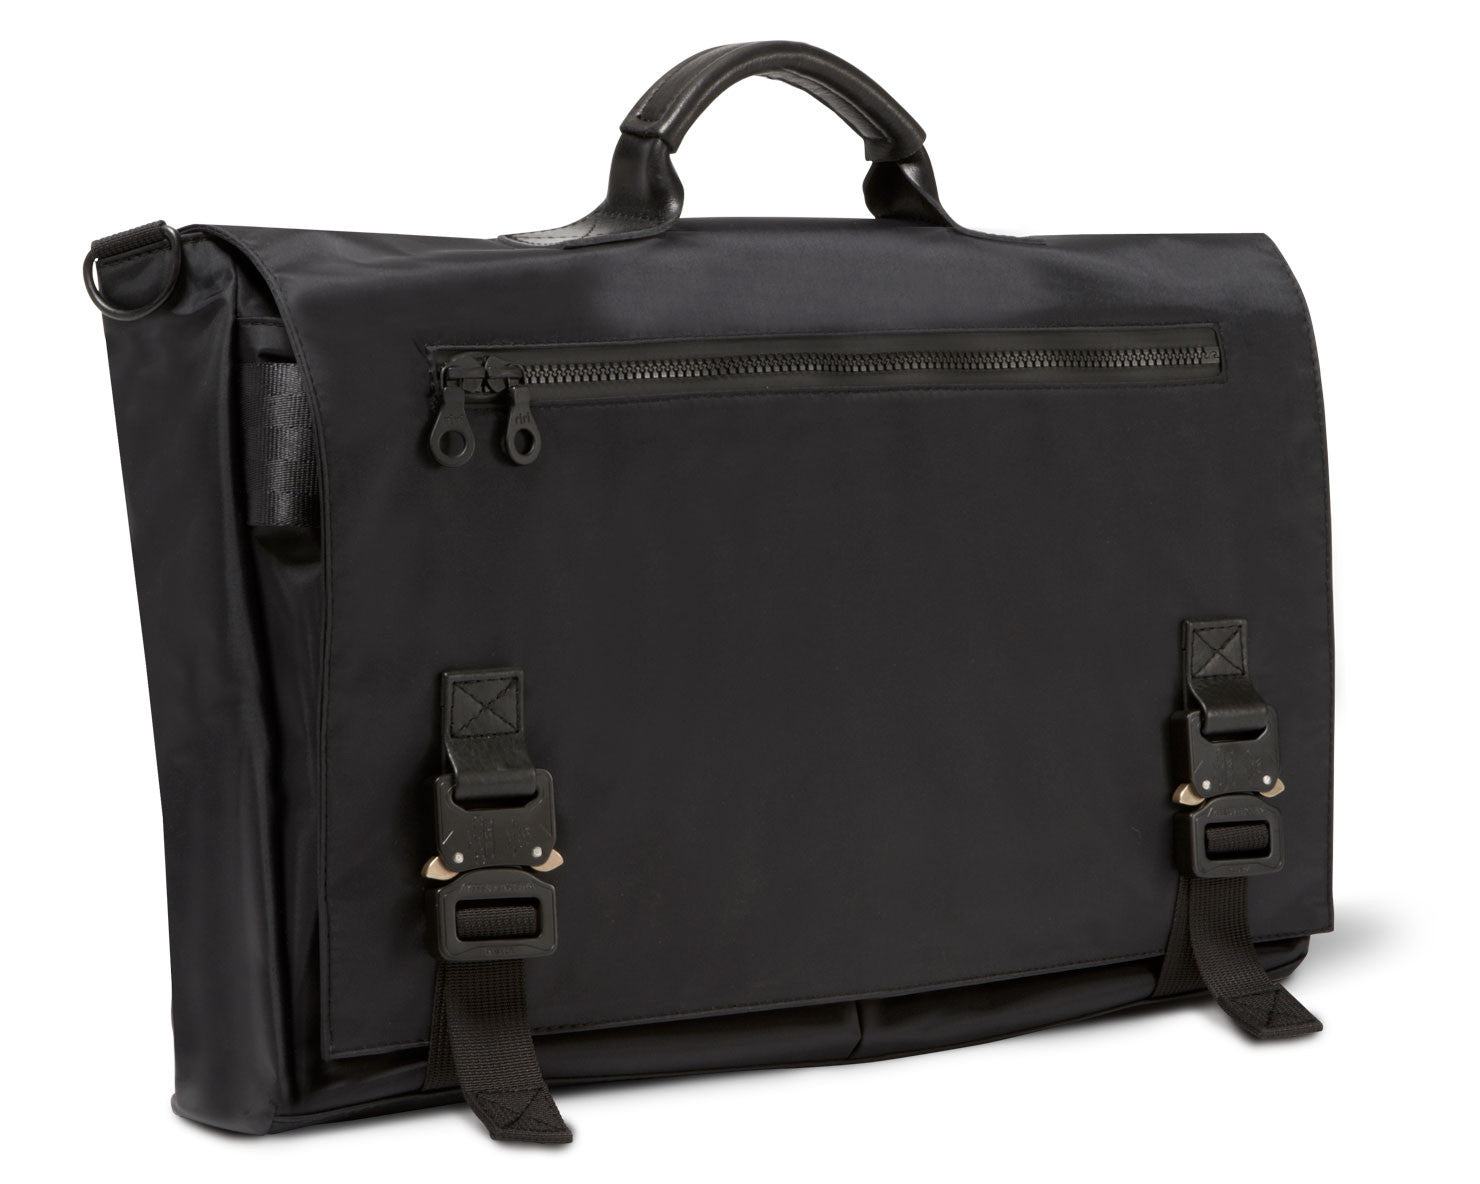 BRIEFCASE 2.0 | KILLSPENCER® - Black Nylon